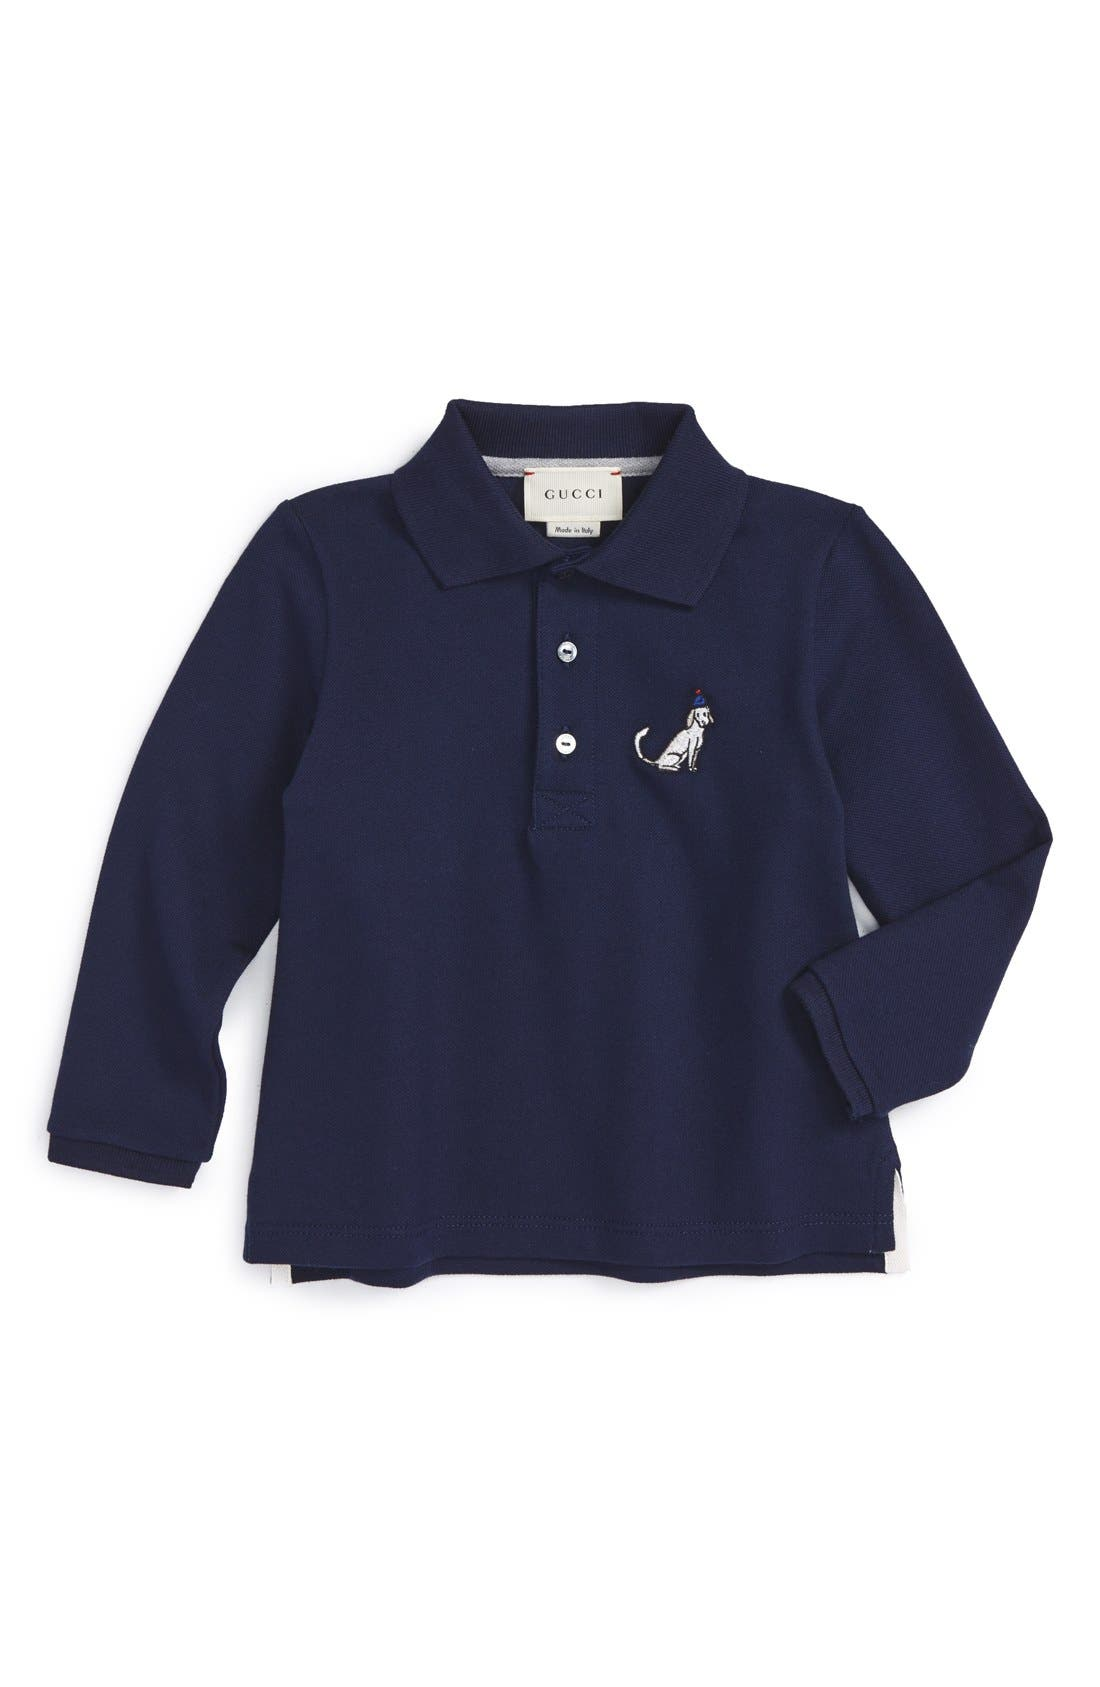 GUCCI KIDSWEAR Gucci Long Sleeve Polo